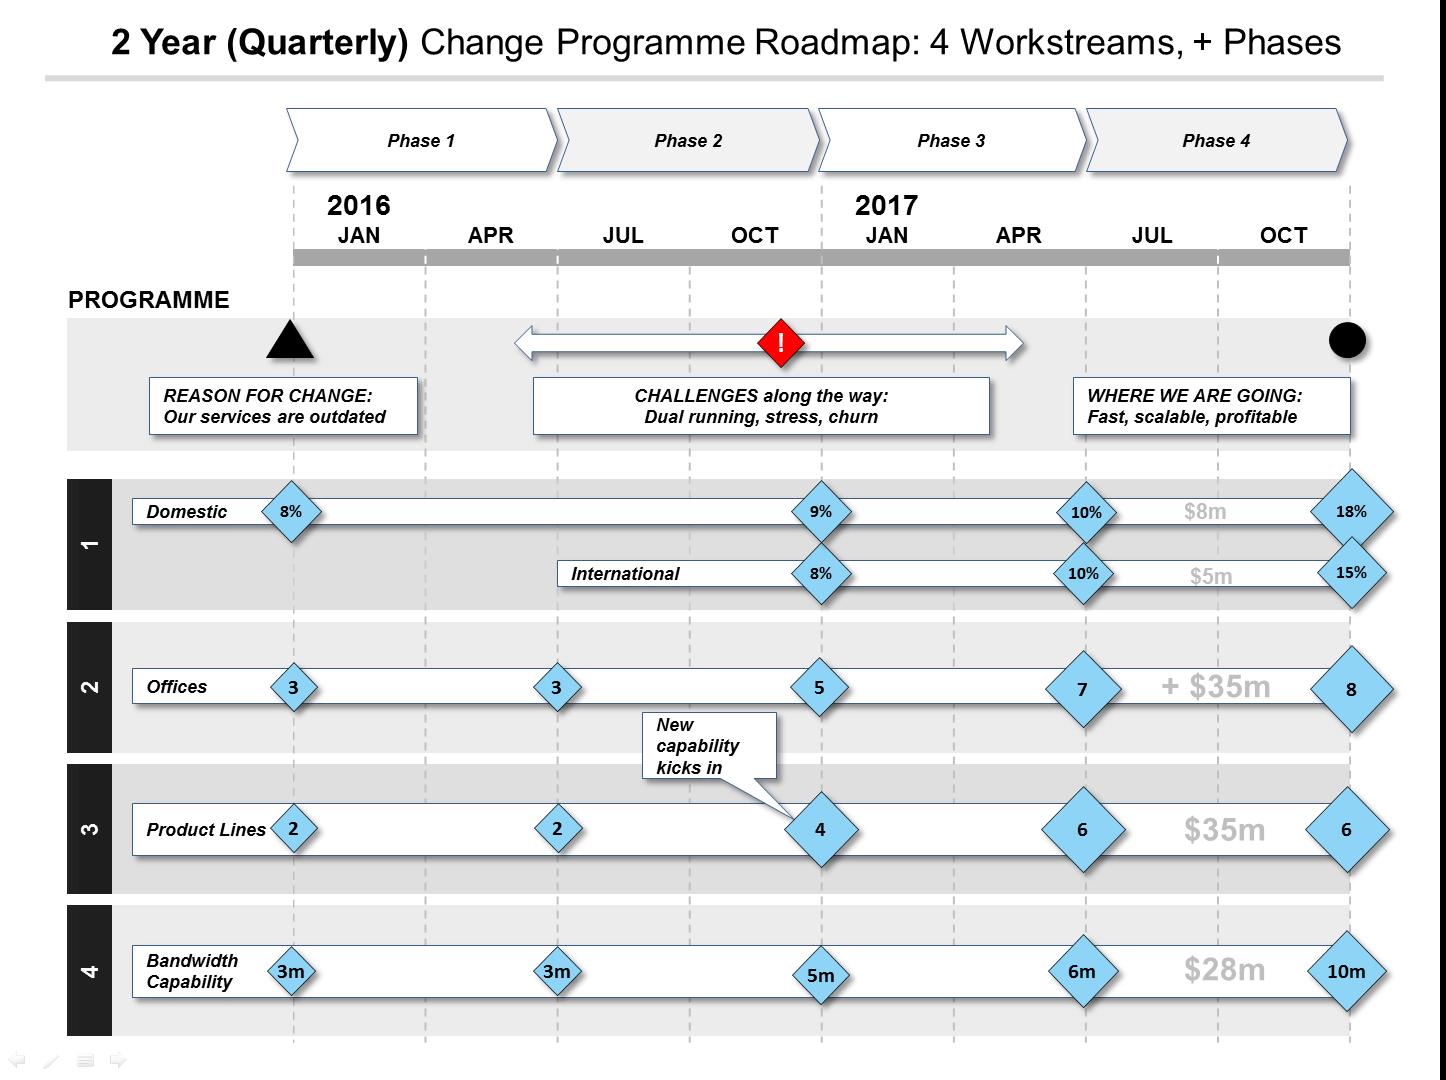 3 Year (Quarterly) Change Programme Roadmap: 4 Workstreams